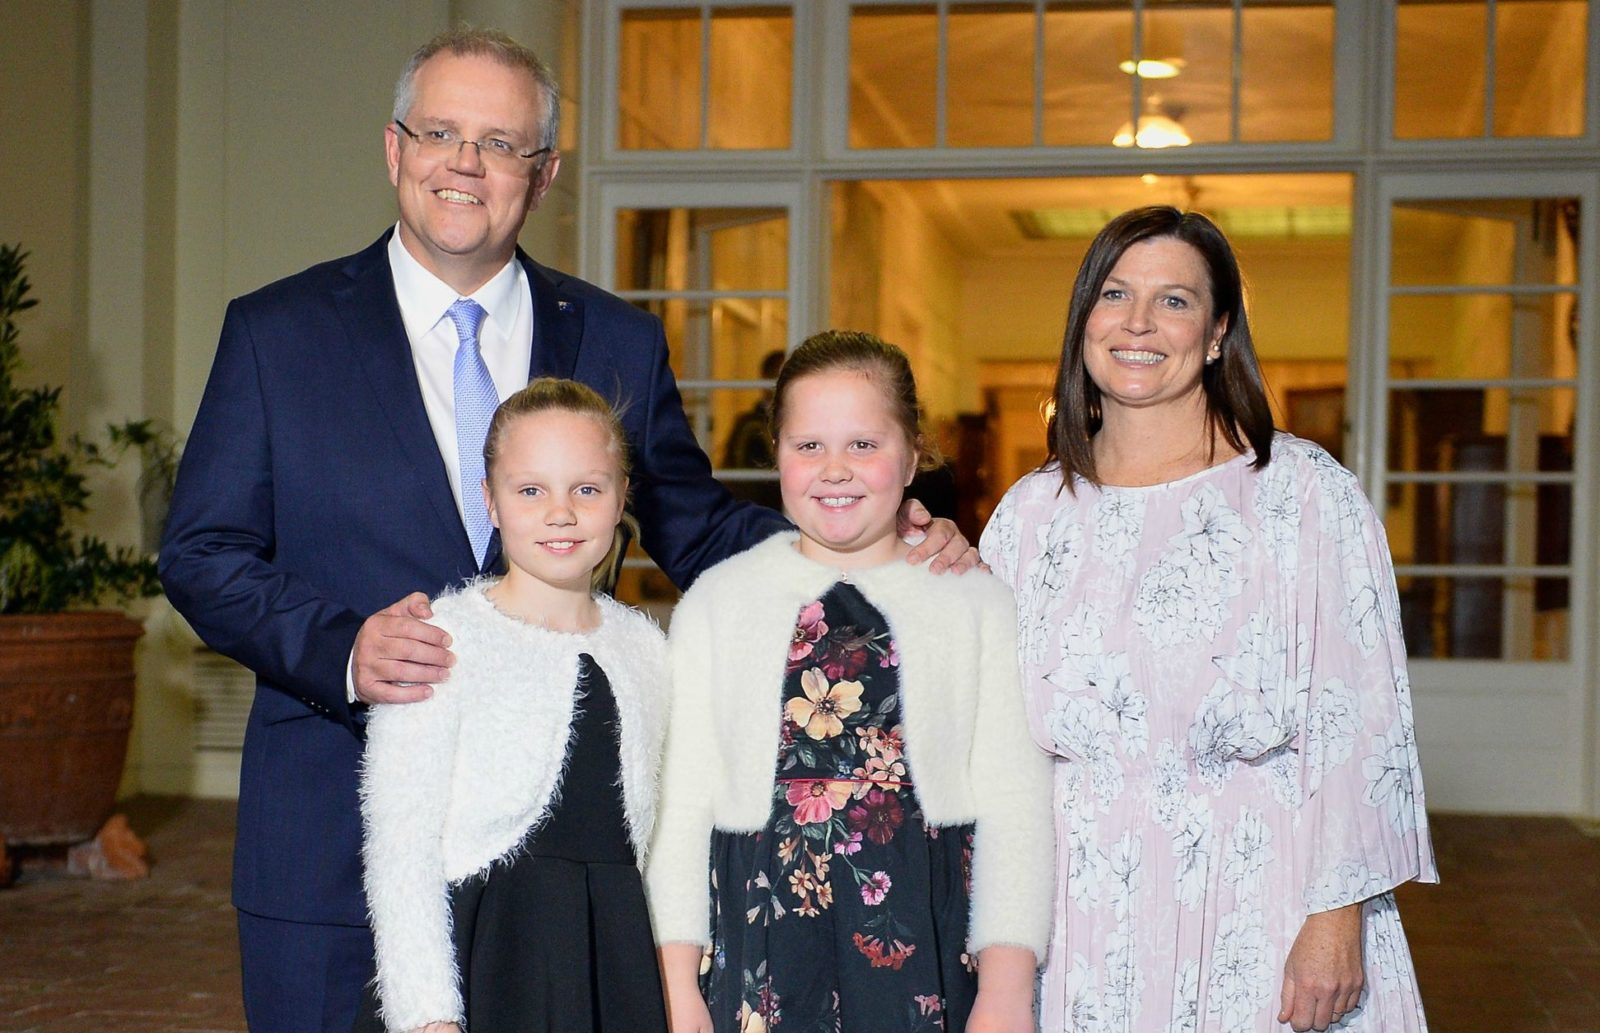 Morrison with his wife Jenny and daughters Abbey and Lily. Source: Getty.